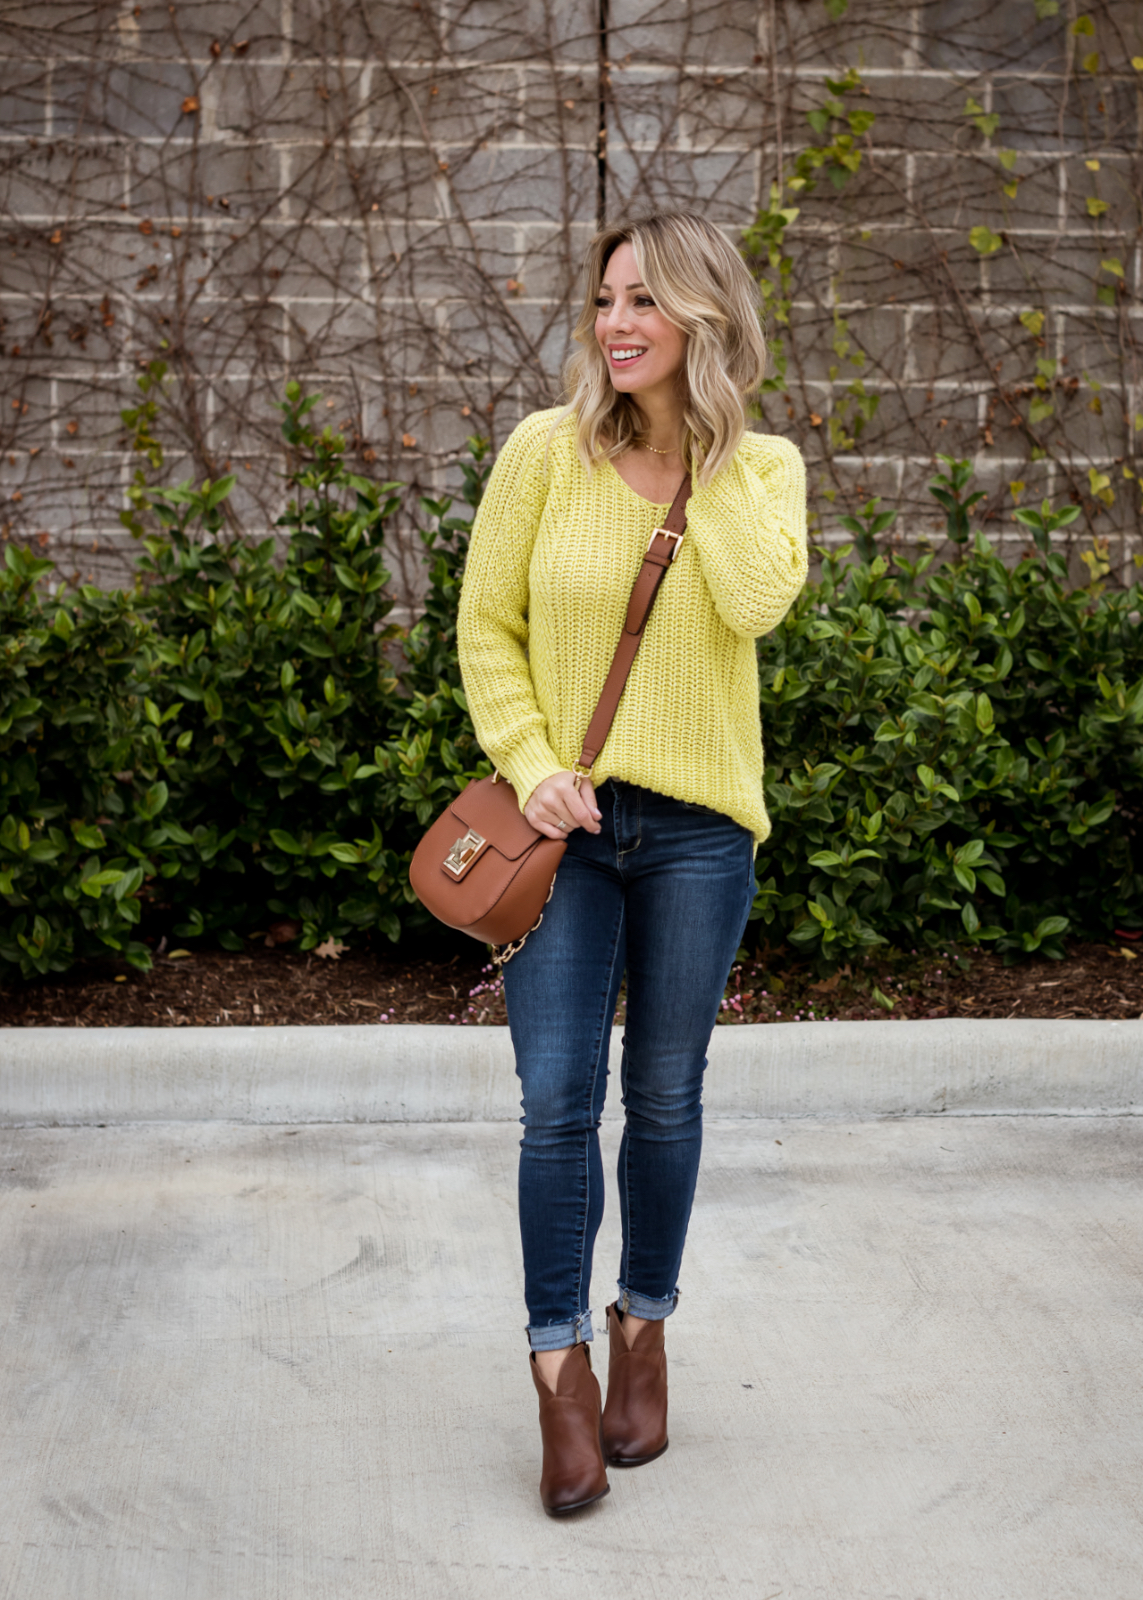 Cute winter outfit - yellow sweater and jeans with brown booties